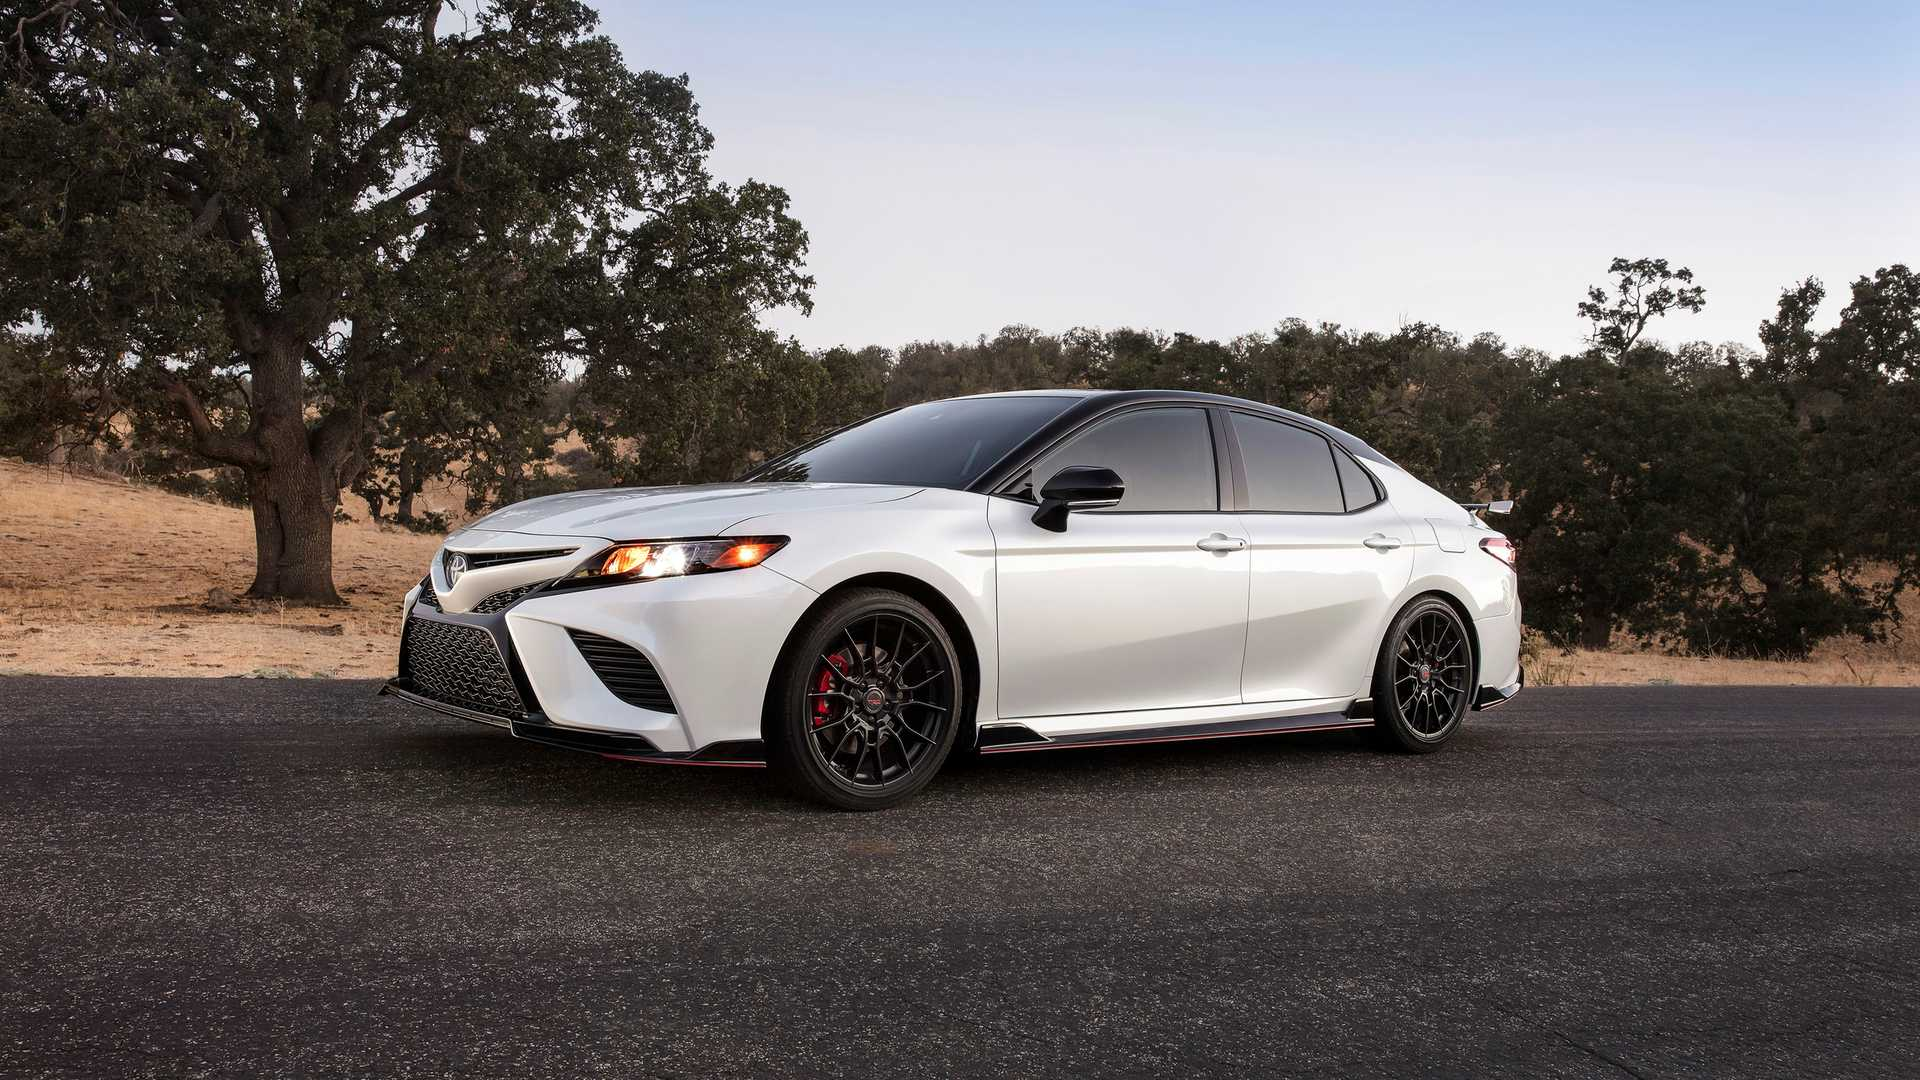 2020 Camry Xse Review.2020 Toyota Camry Trd Costs 31 995 It S The Cheapest Camry V6